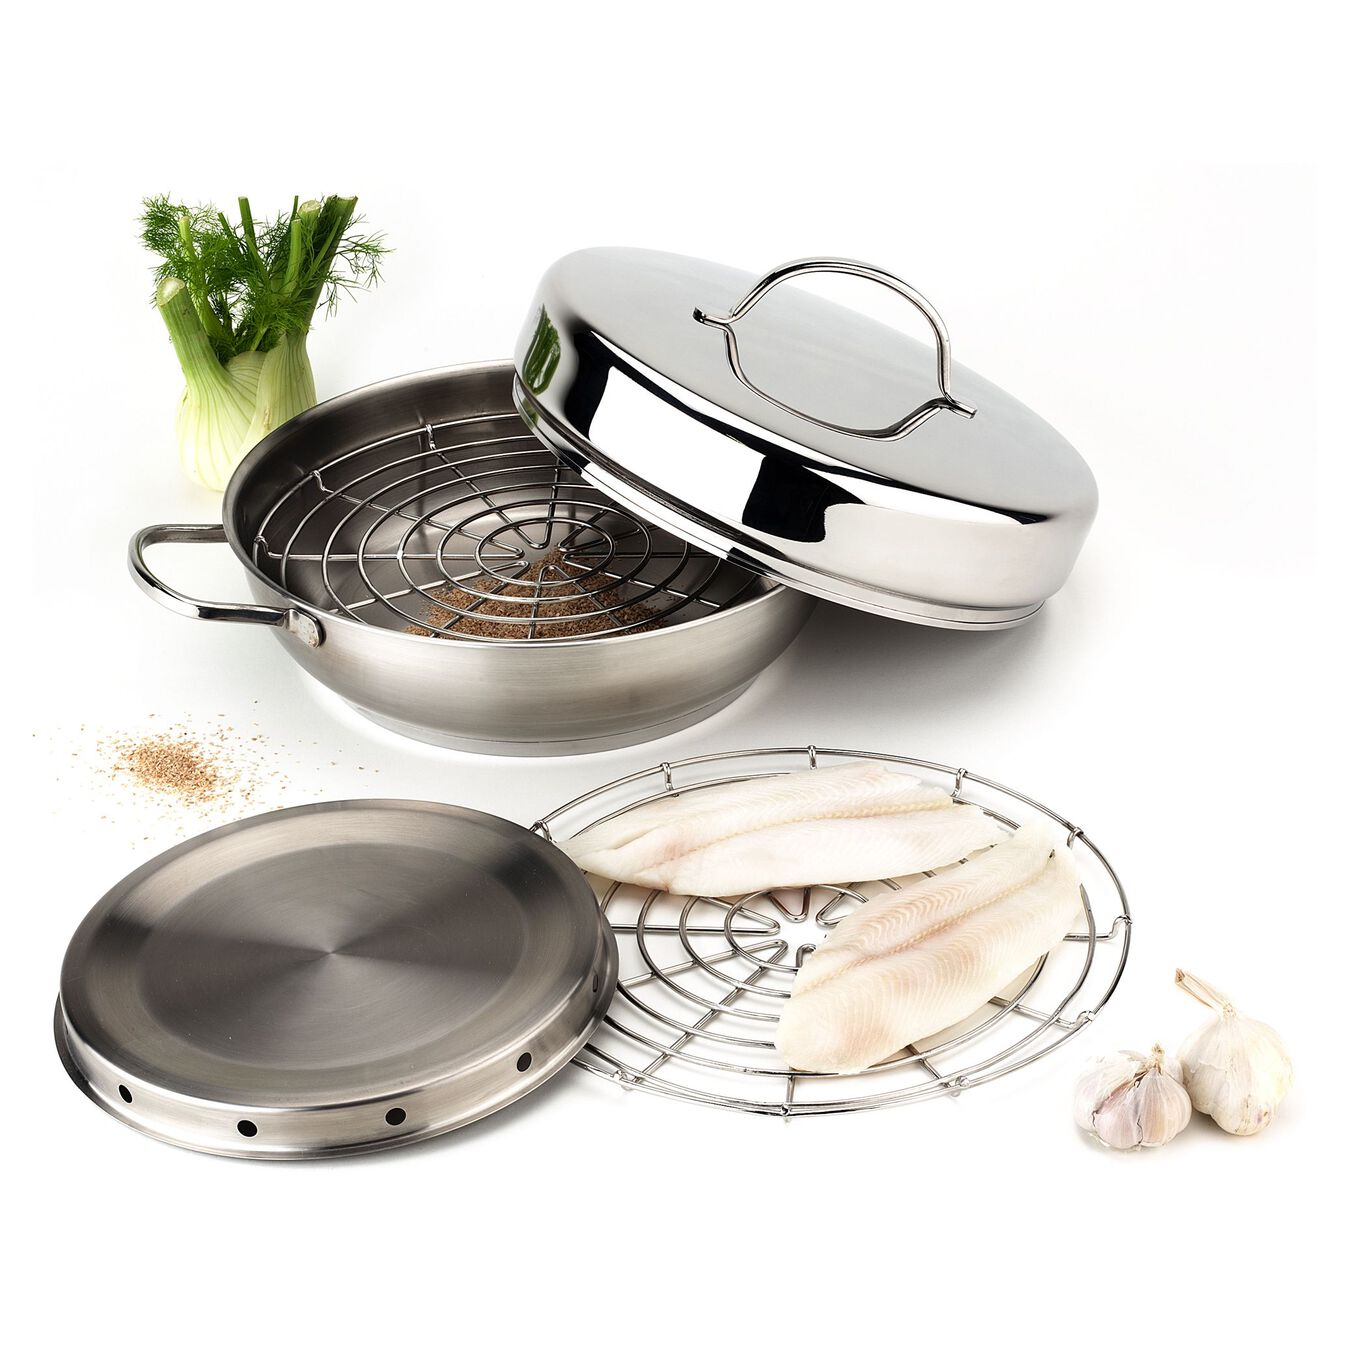 18/10 Stainless Steel Set de fumage,,large 2